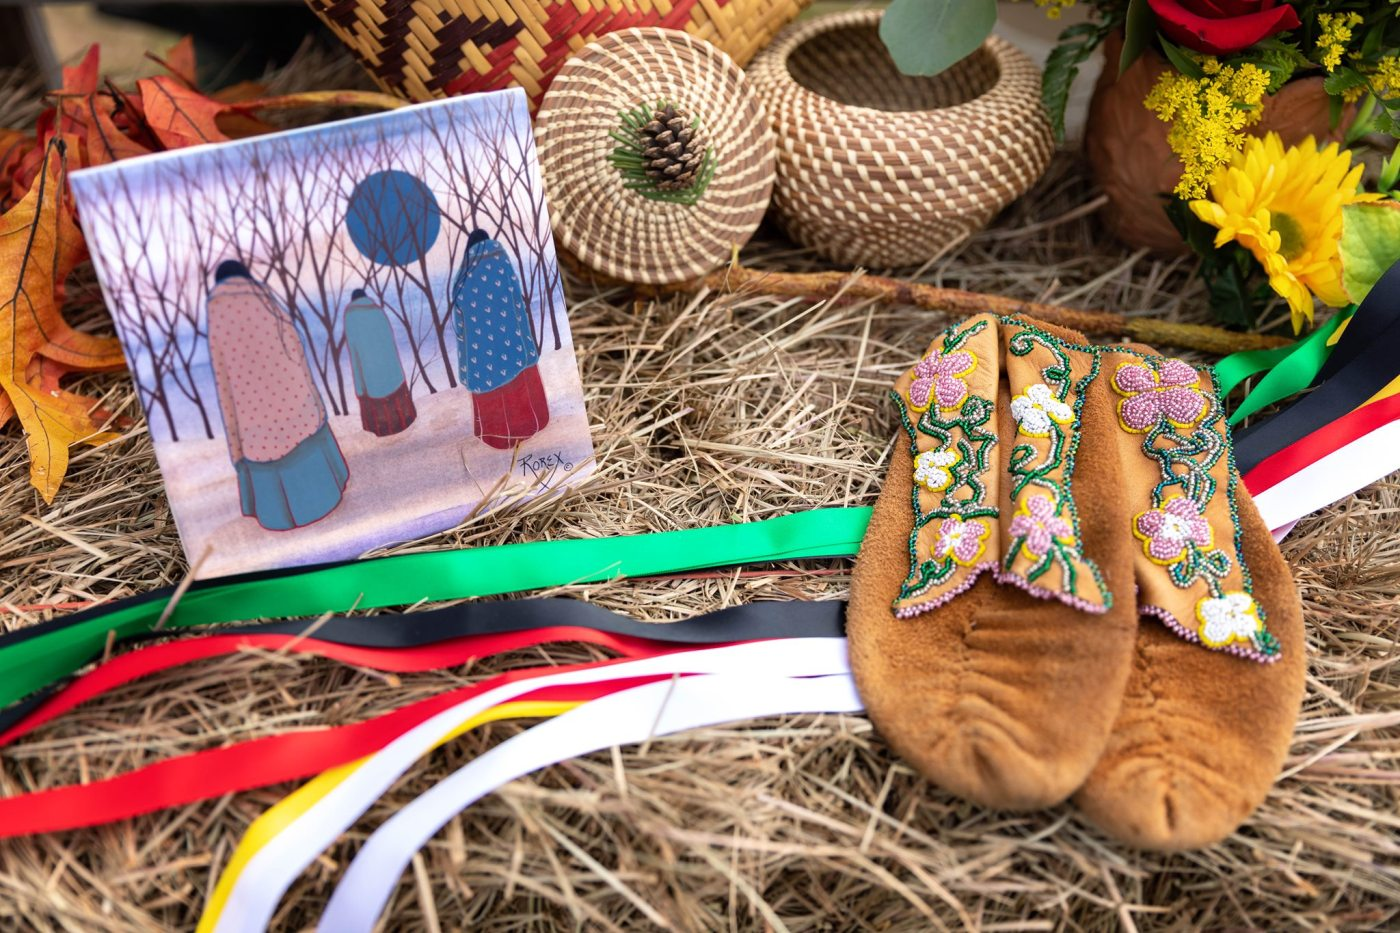 Native American made goods and art